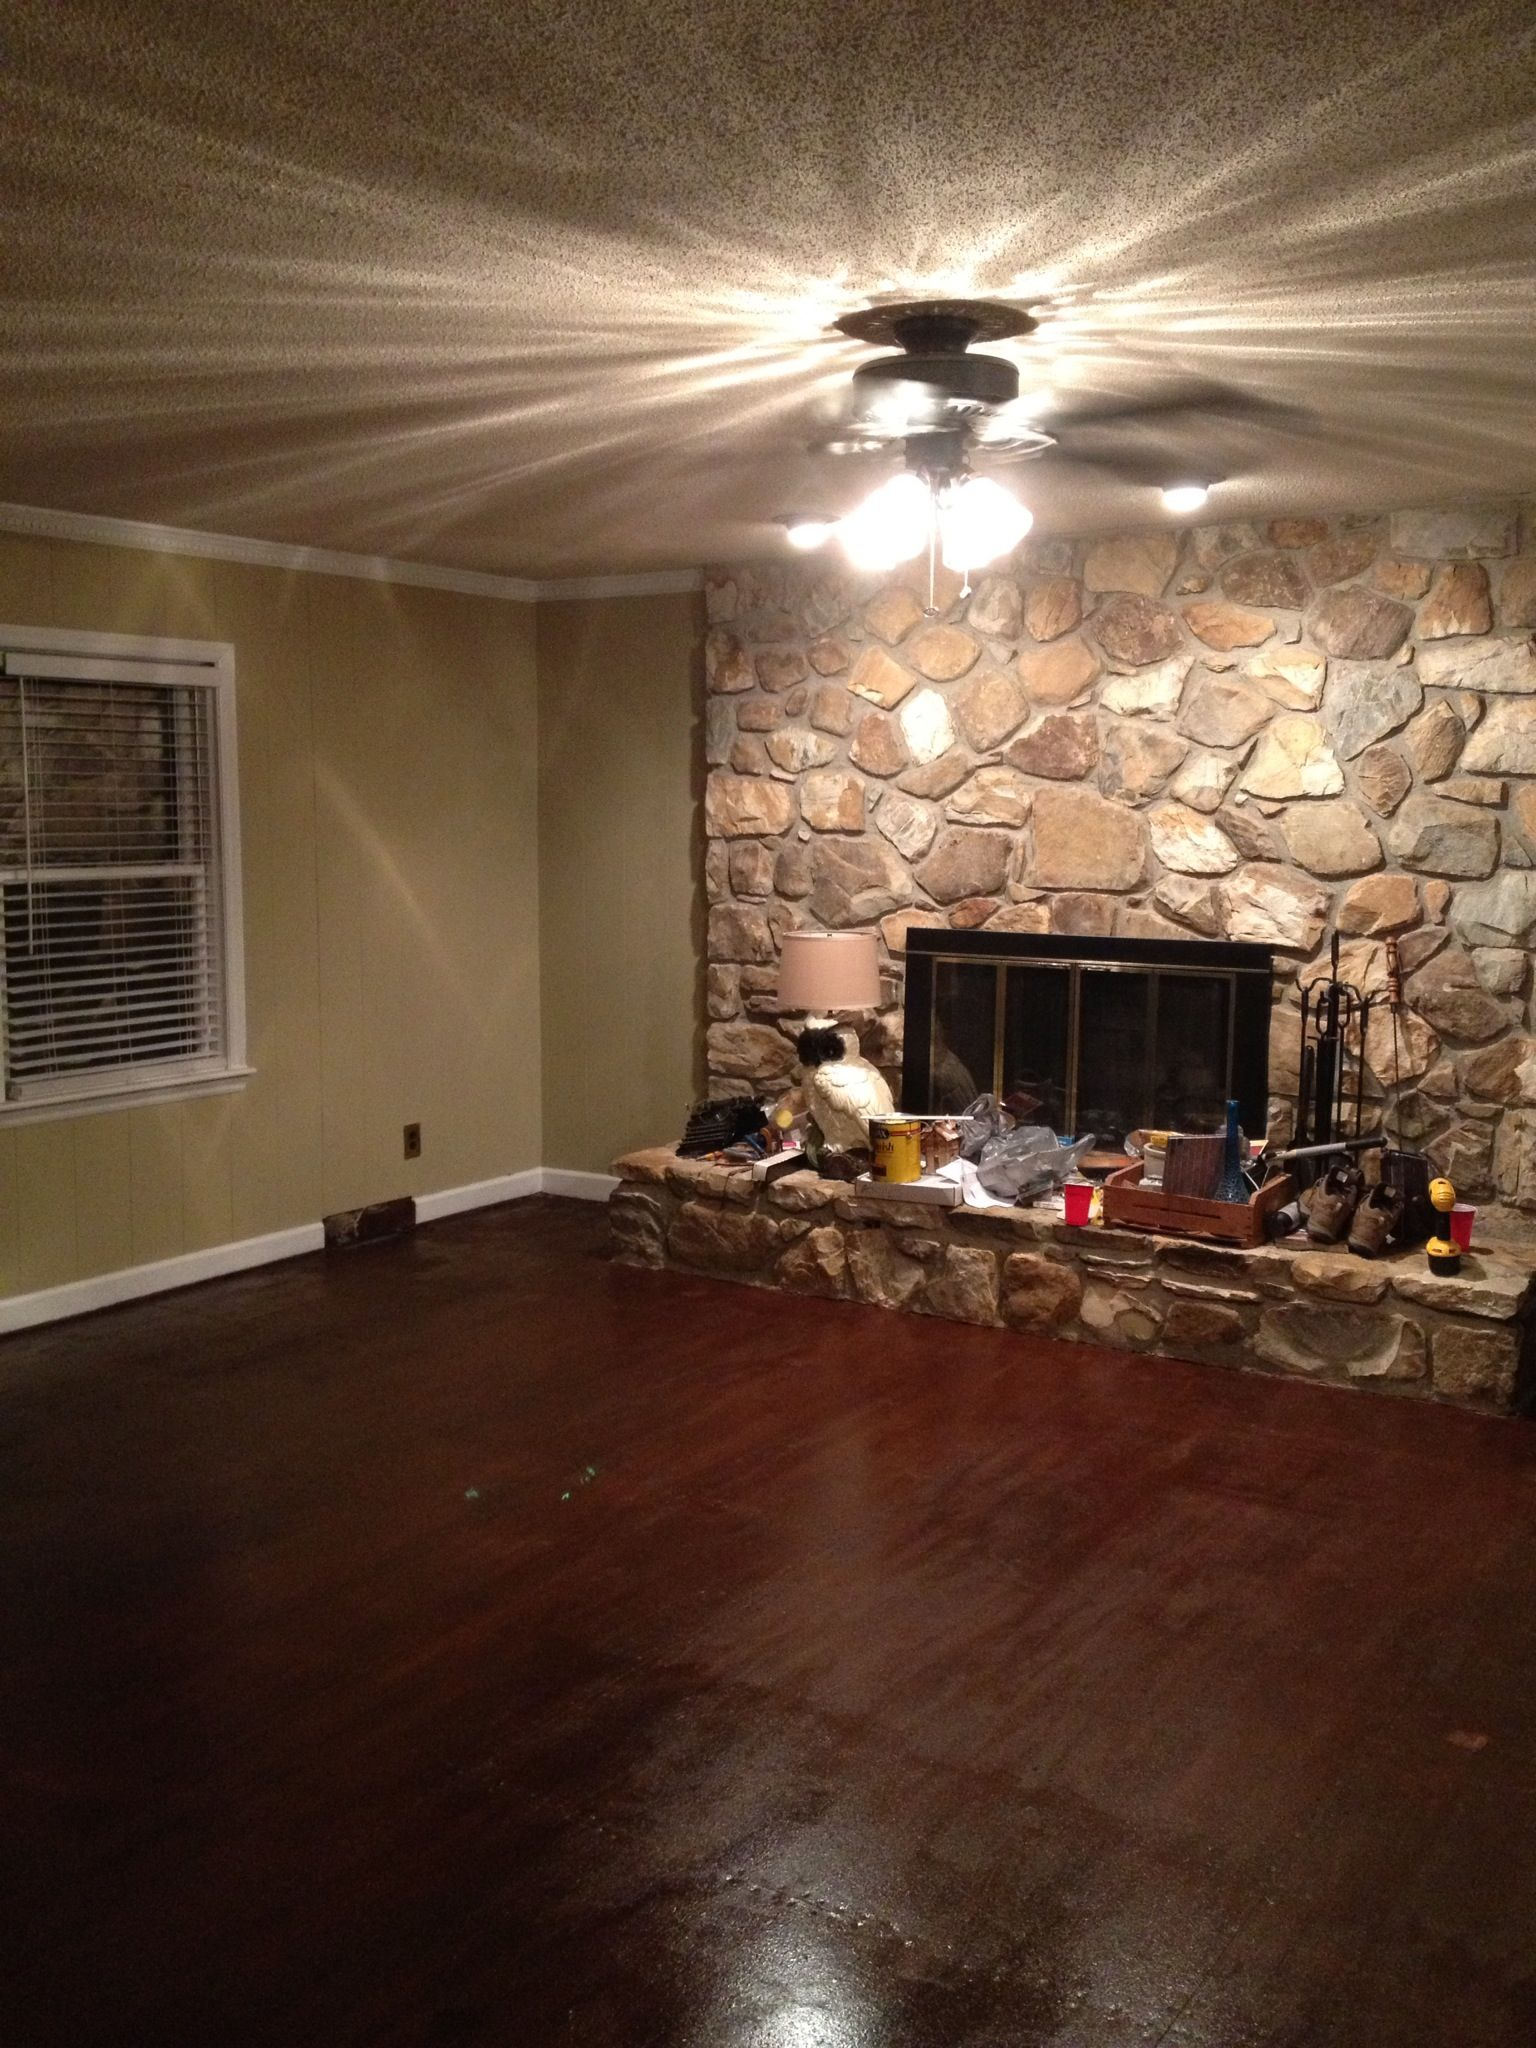 particle board floor how did they make this look so. Black Bedroom Furniture Sets. Home Design Ideas